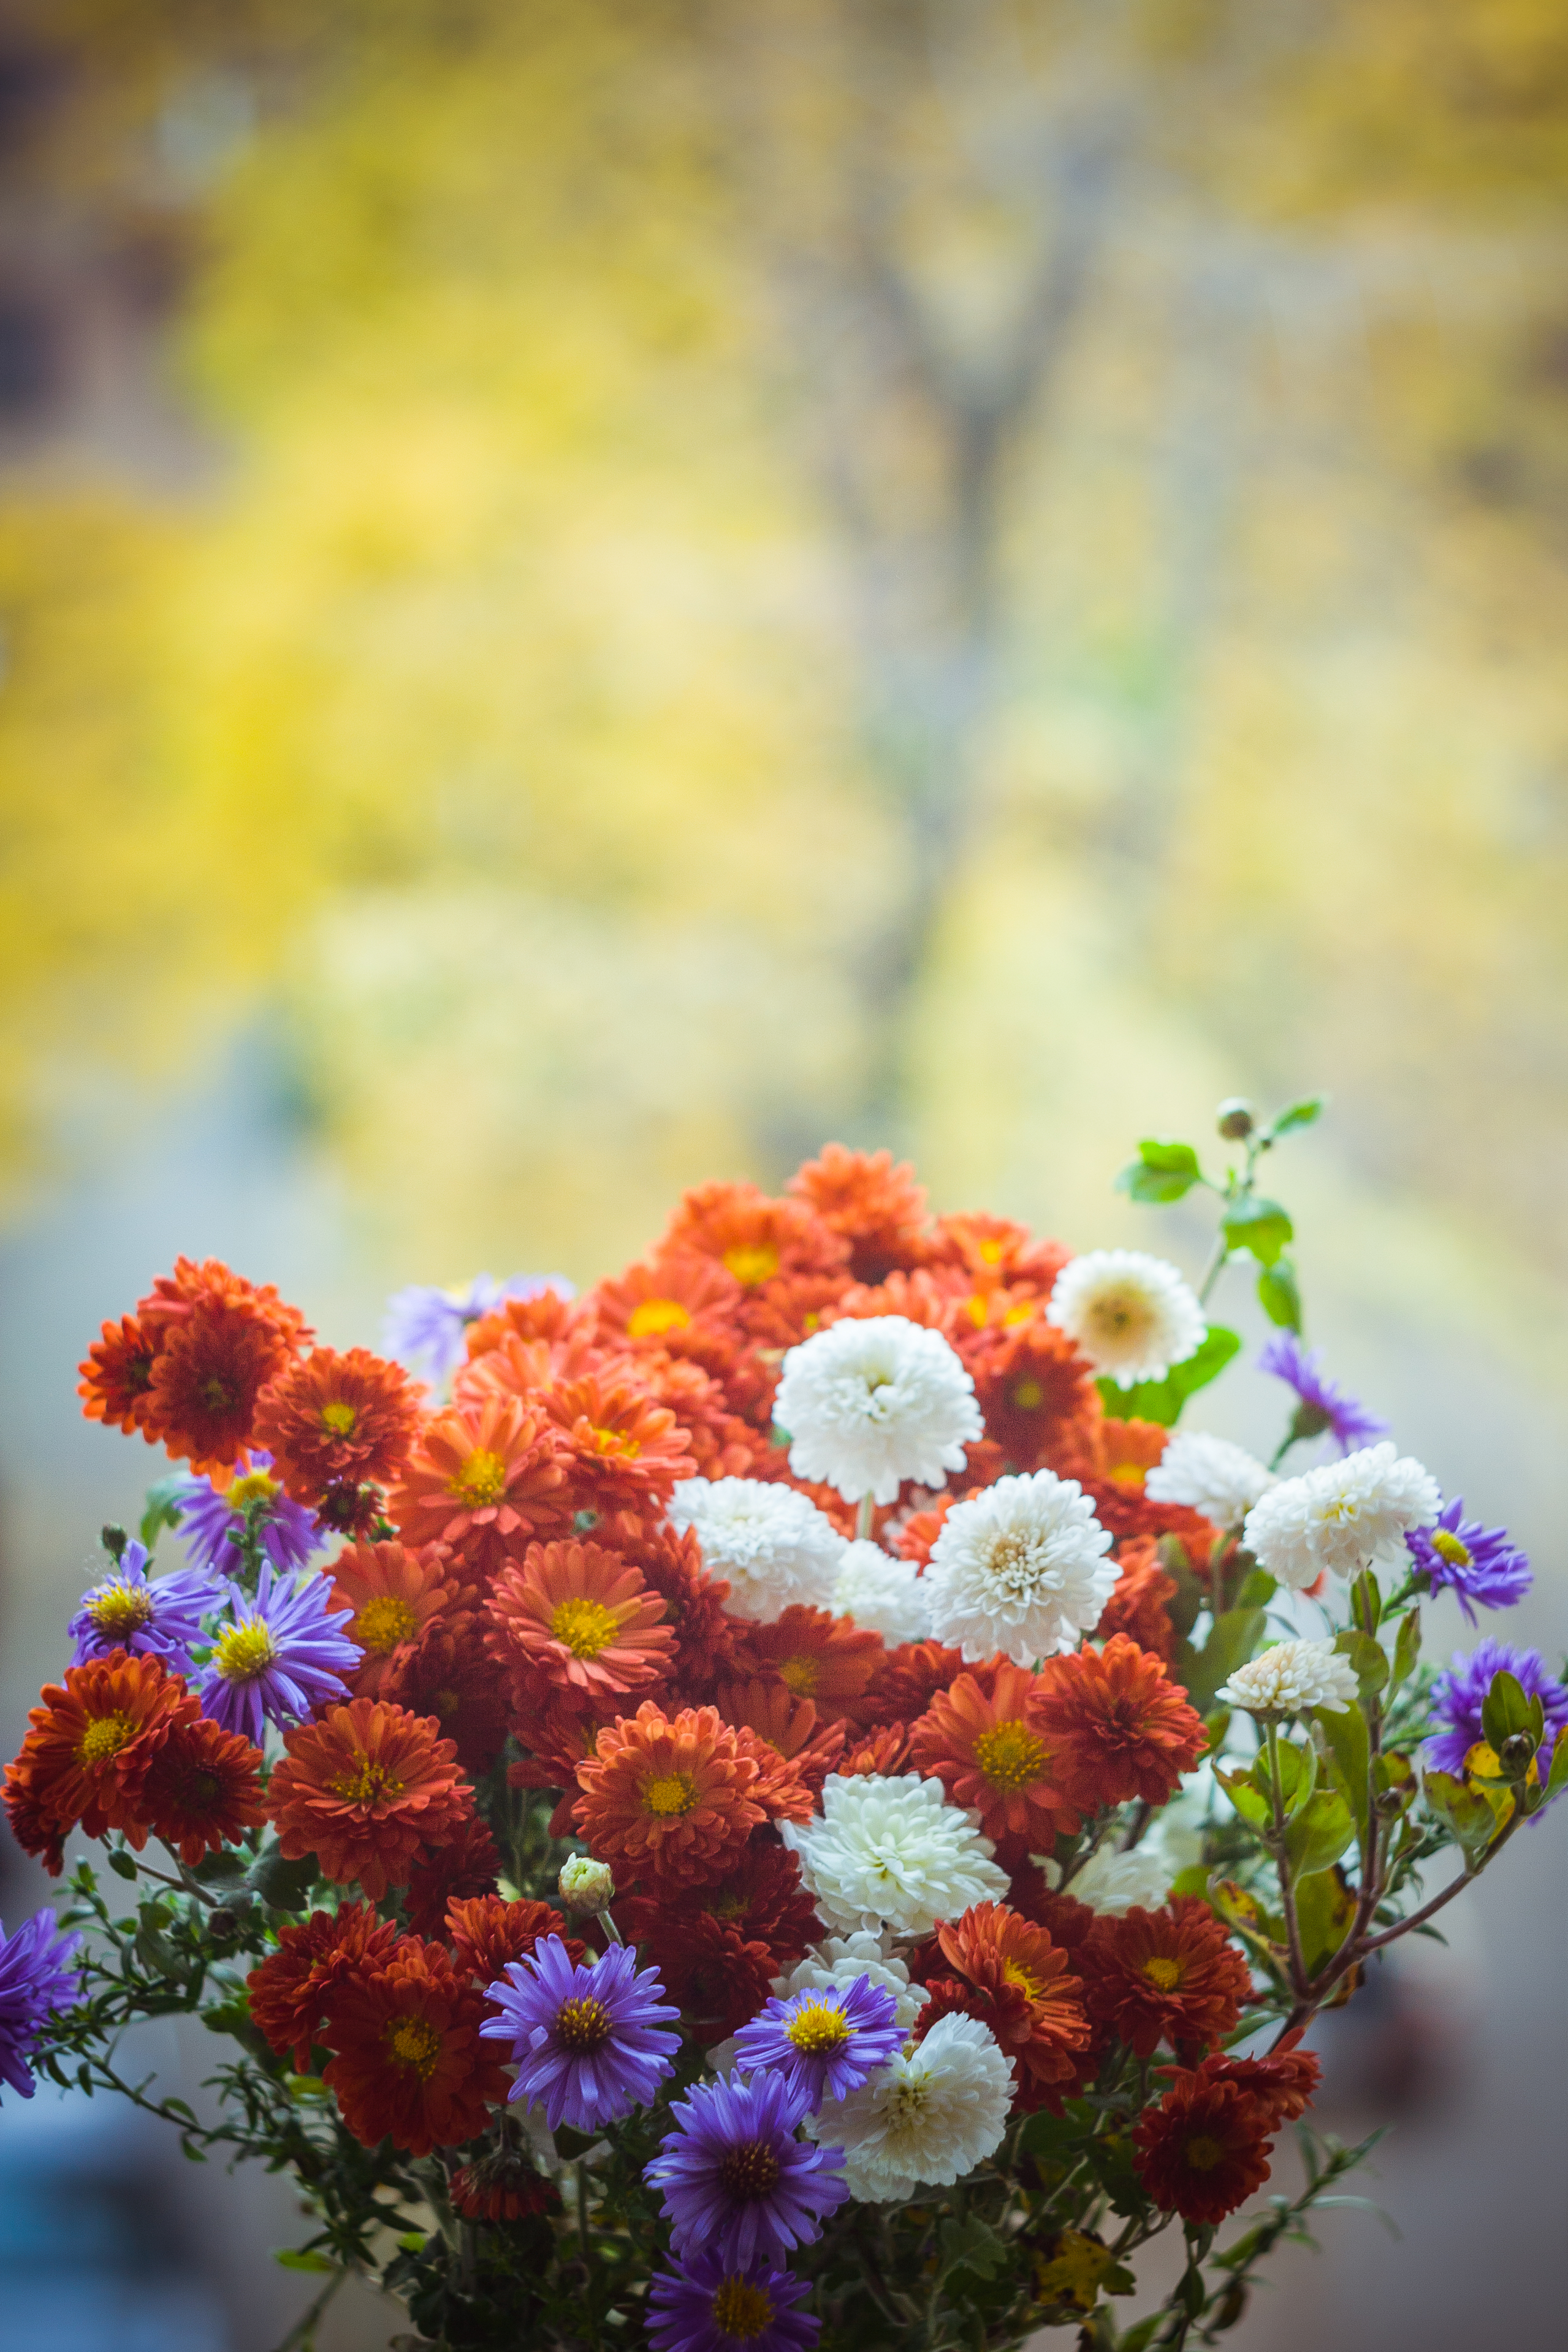 Beautiful Wallpapers For Iphone 6 Plus Close Up Photography Flowers In A Vase 183 Free Stock Photo